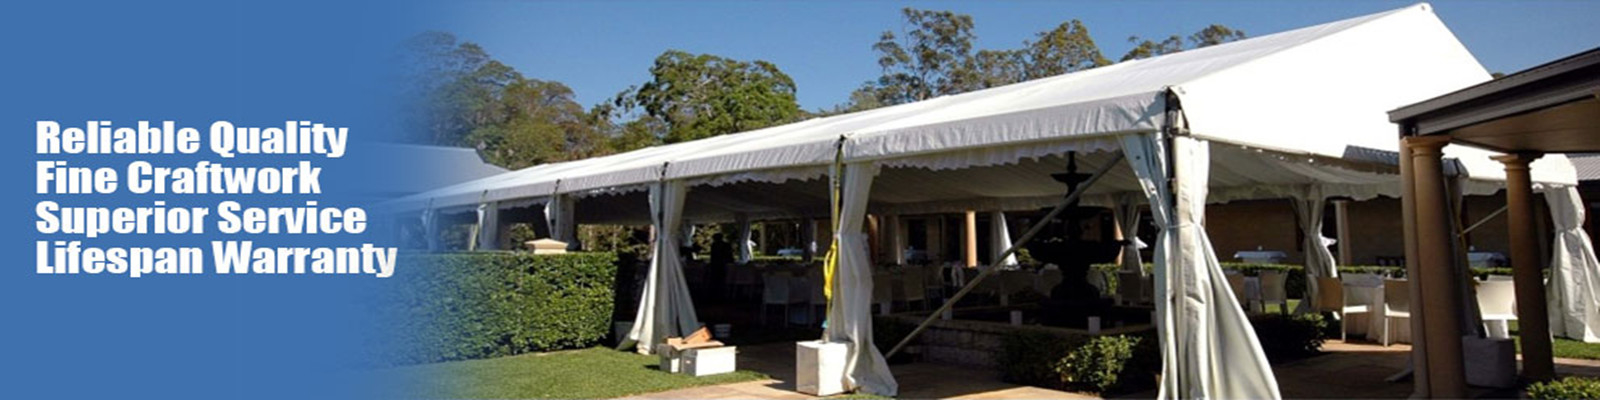 Tenda all'aperto di evento